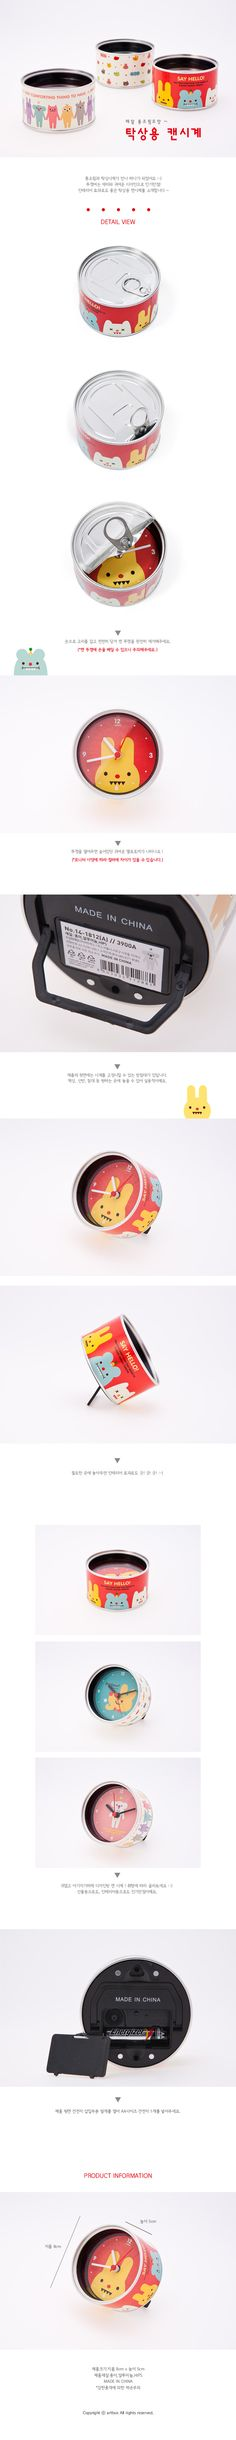 Just too cute desk clock packaging PD